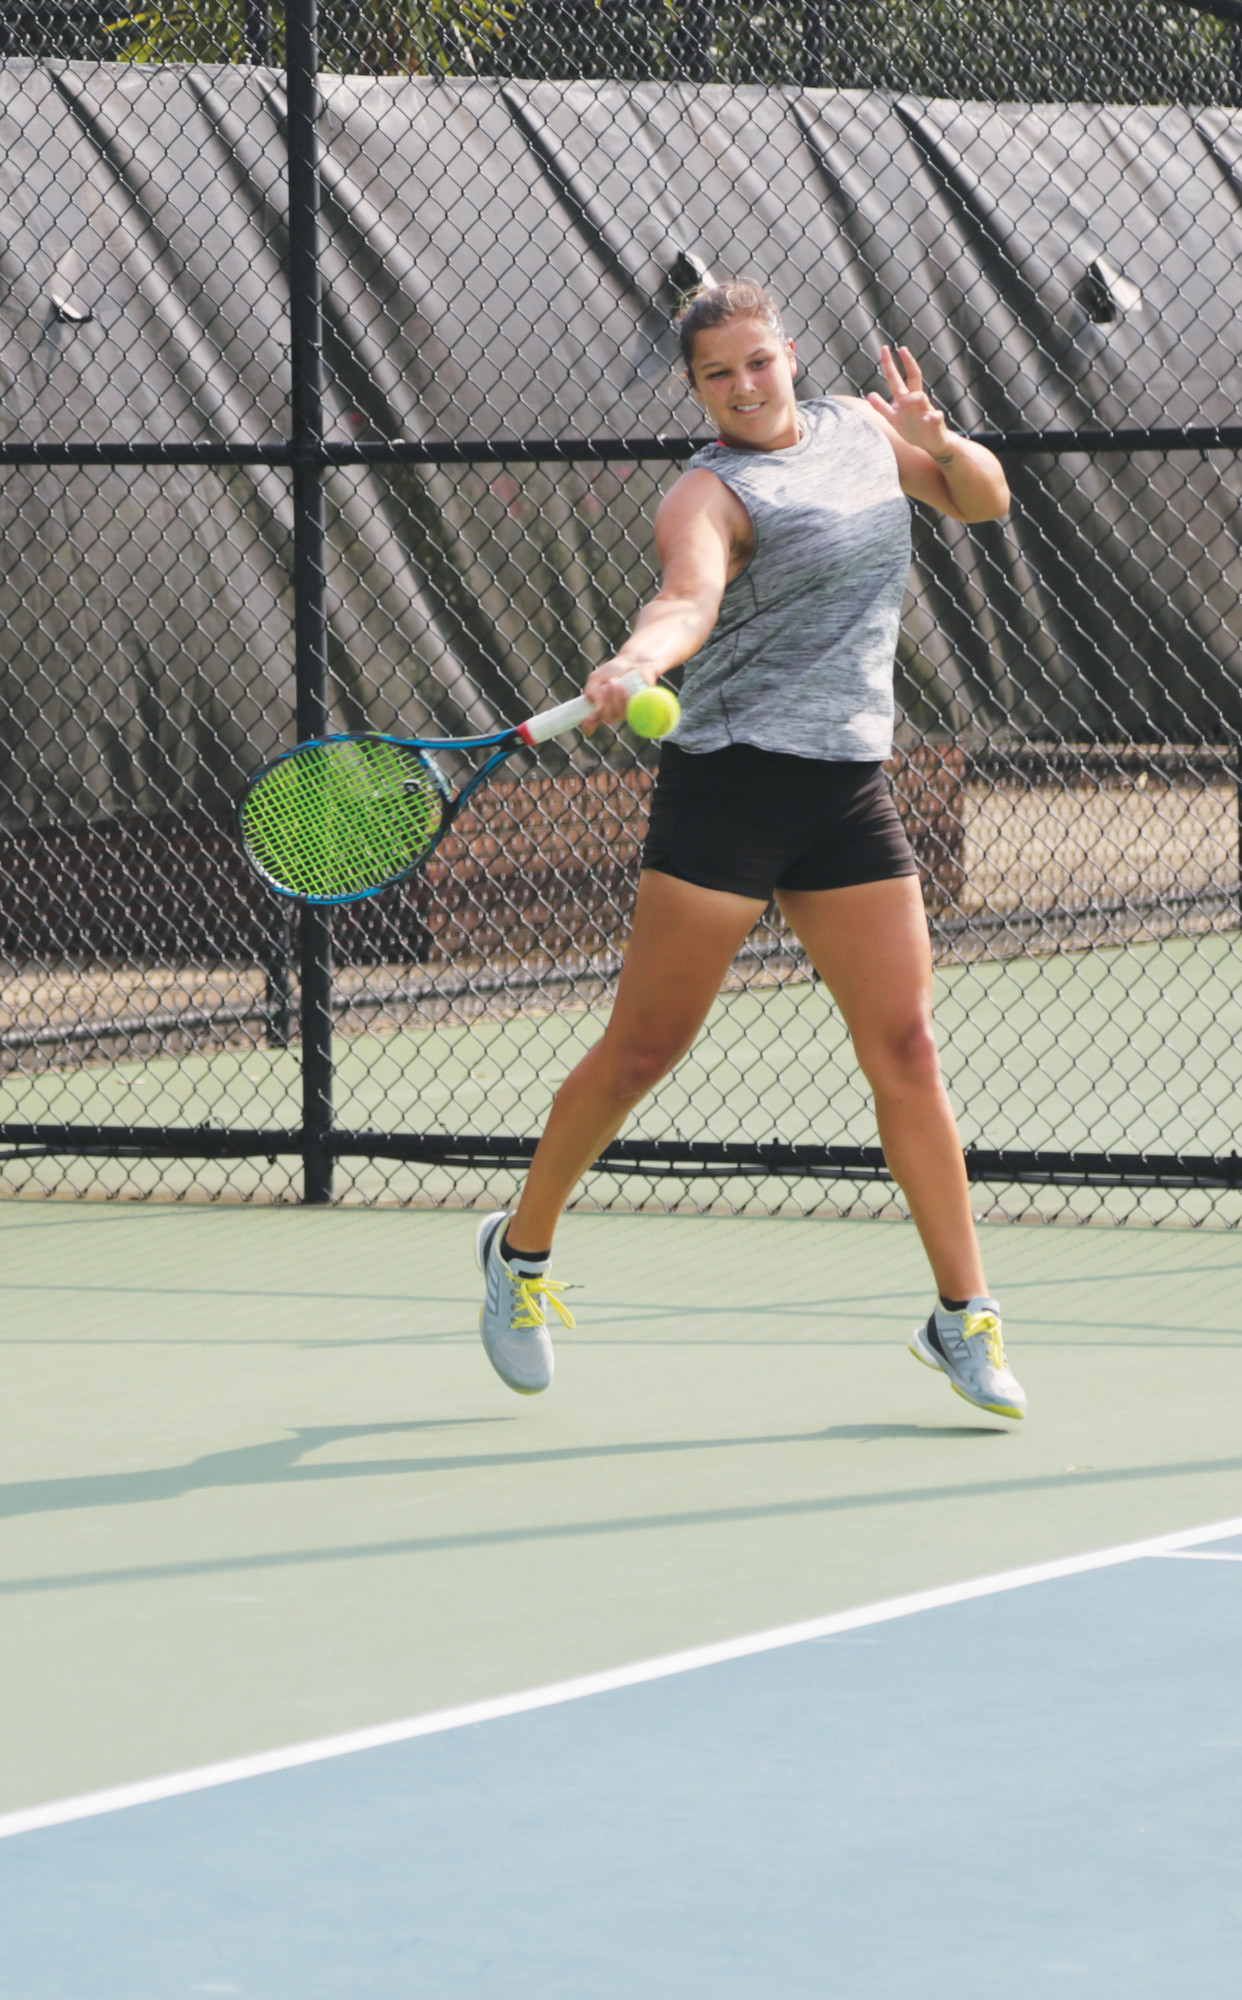 Lauren Proctor returns a shot during a doubles qualifying match in the Palmetto Pro Open at Palmetto Tennis Center on Monday. Proctor teamed with Alice Garcia to defeat Robin Anderson and Alize Lim 3-6, 6-2, (10-5).